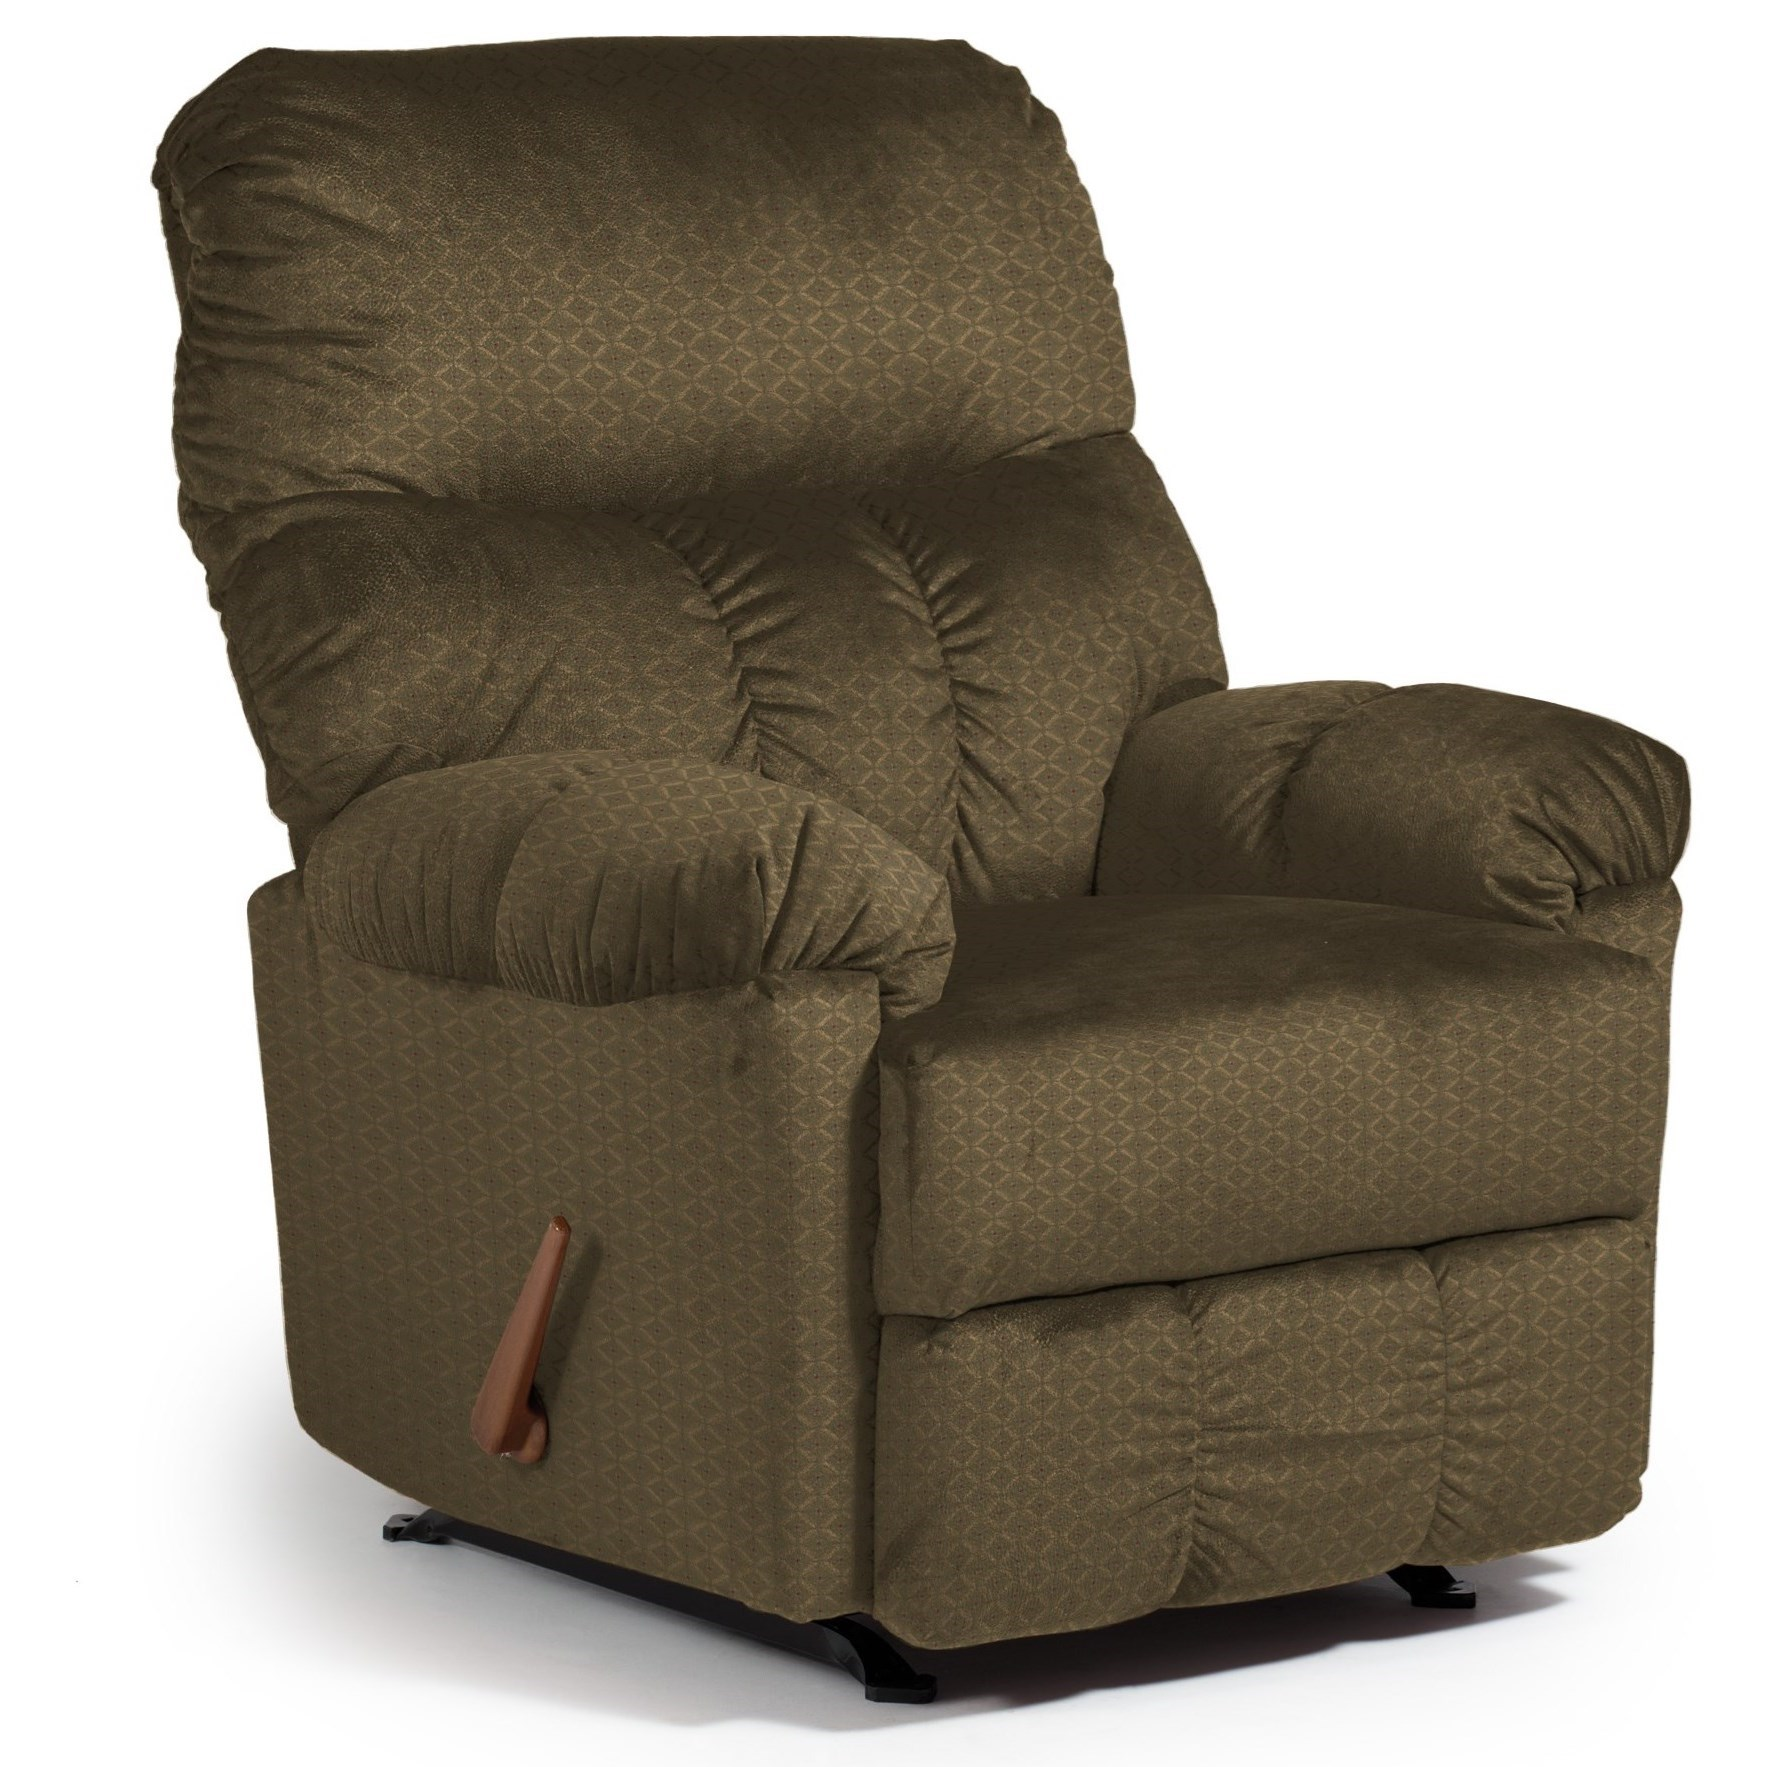 Best Home Furnishings Ares Ares Rocker Recliner - Item Number: 1050746803-18021